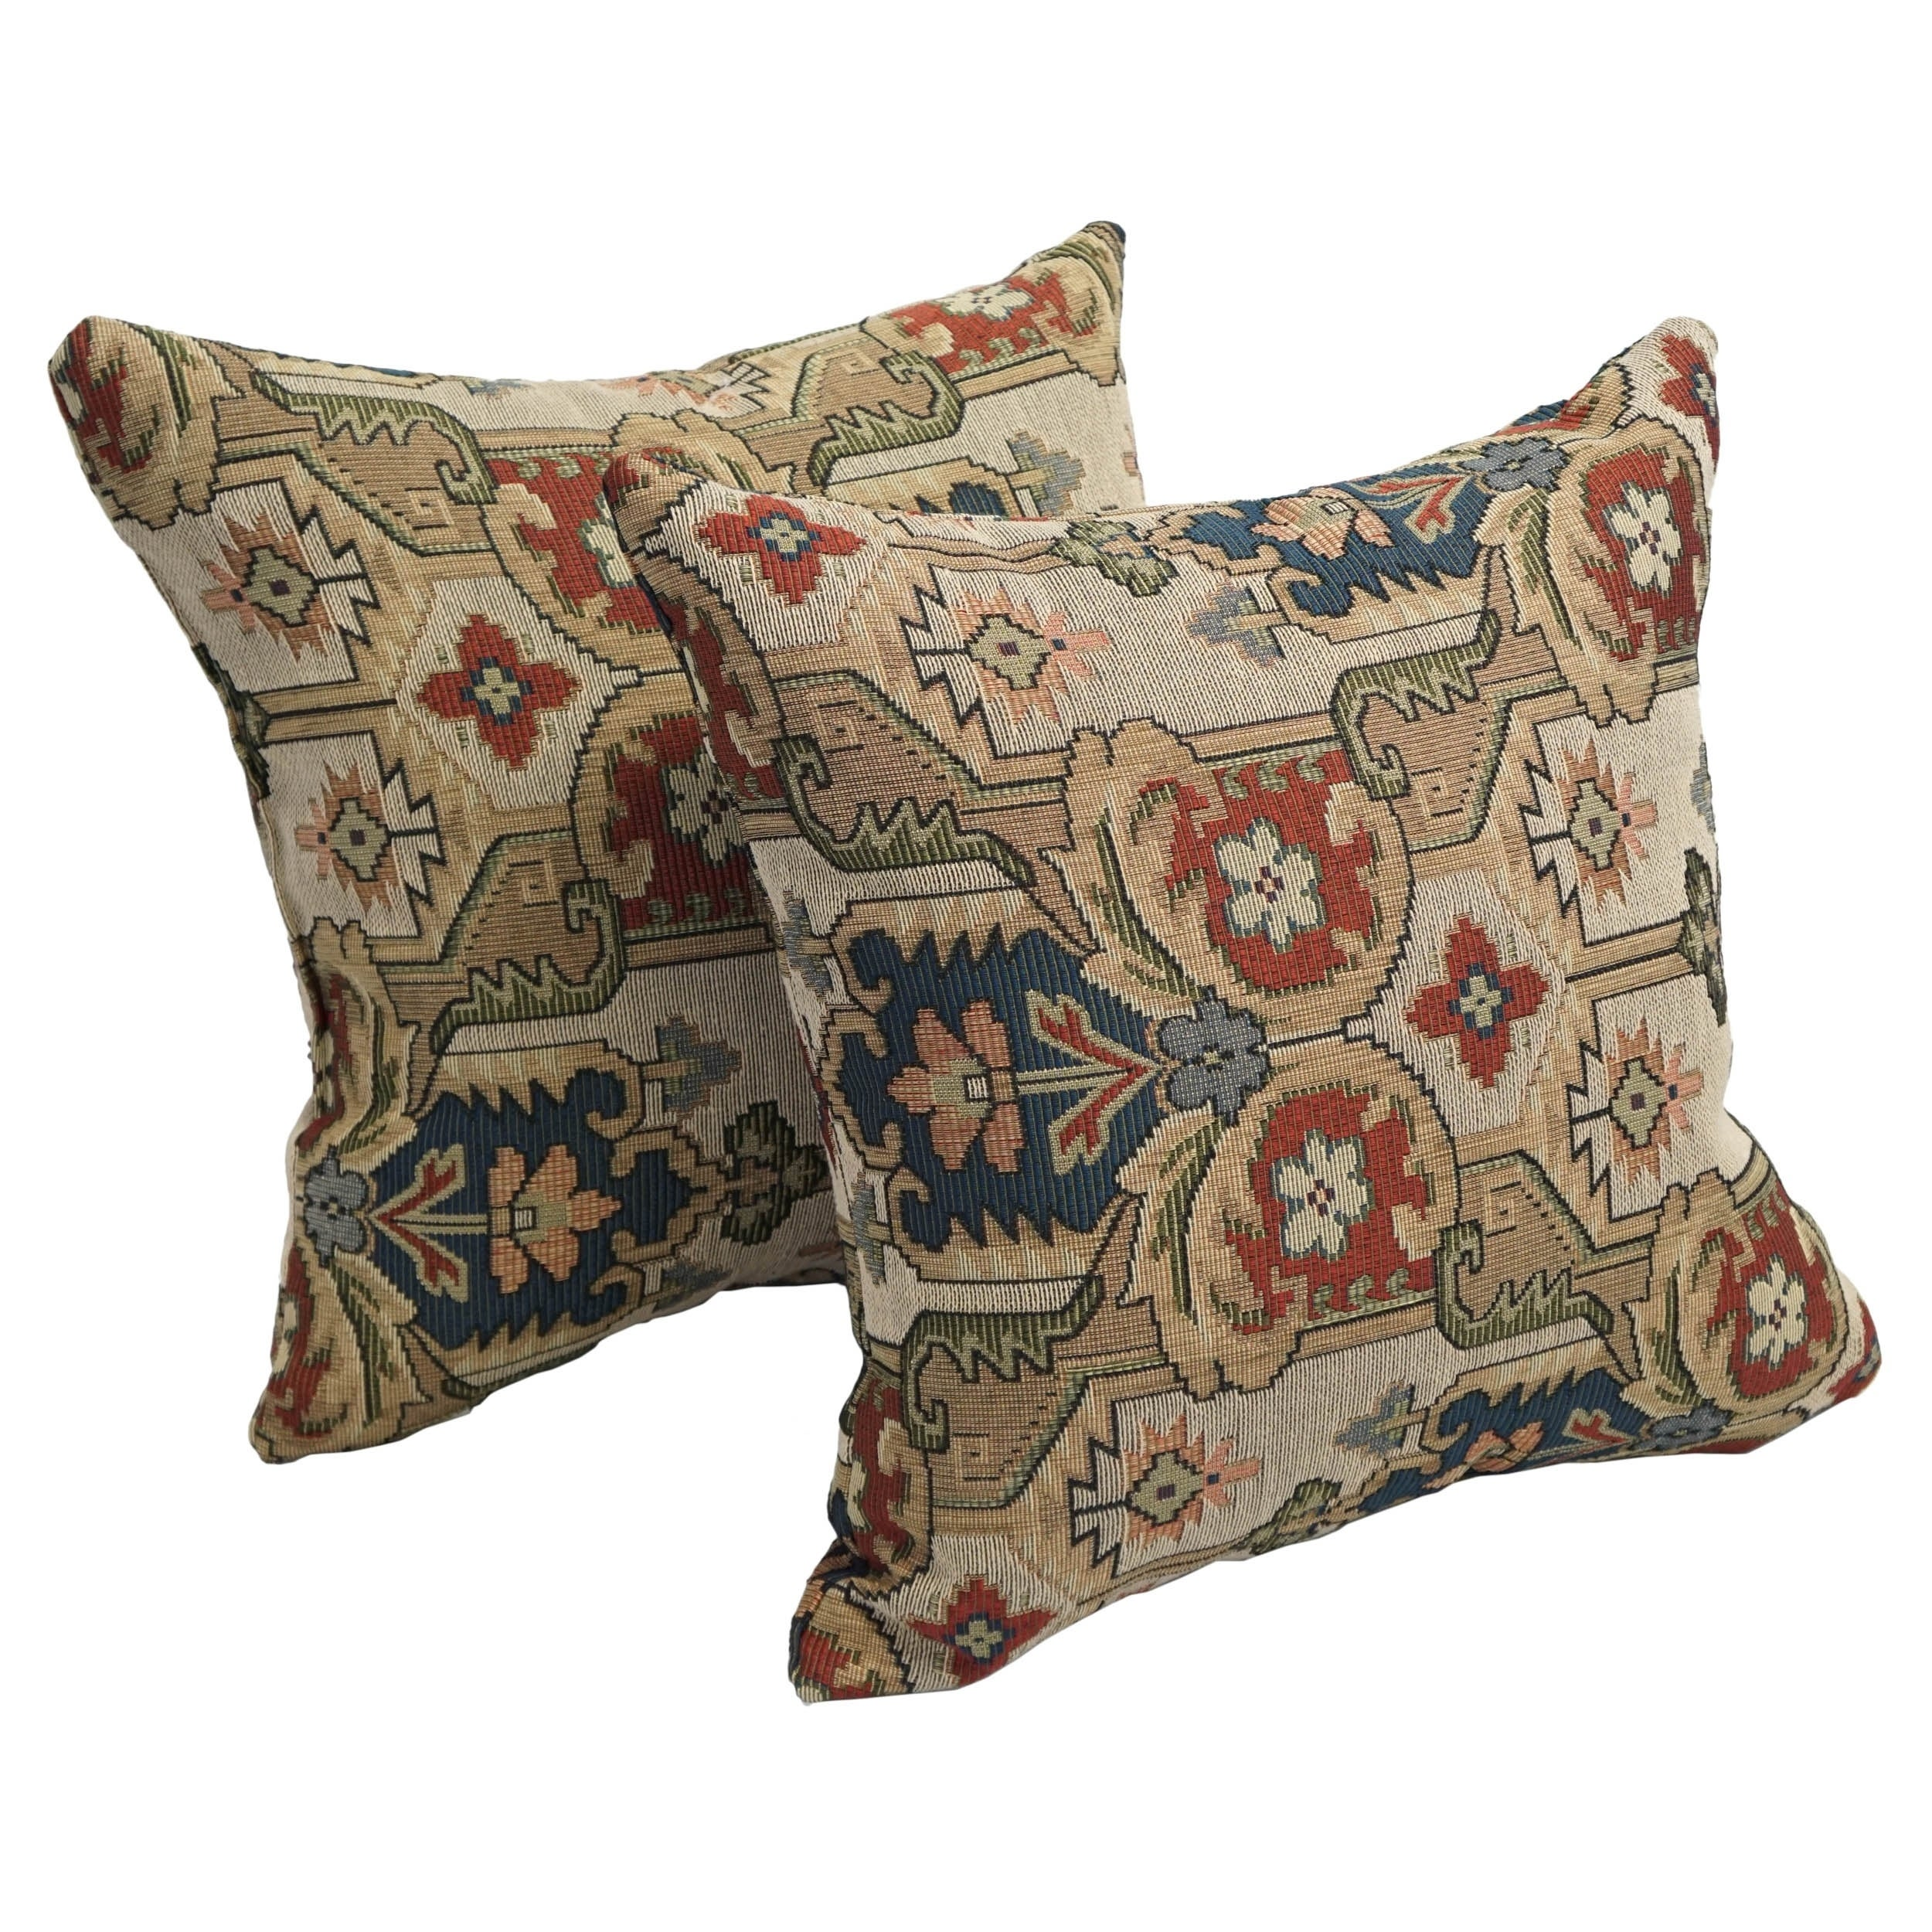 Buy Abstract Throw Pillows Online At Overstock Our Best Decorative